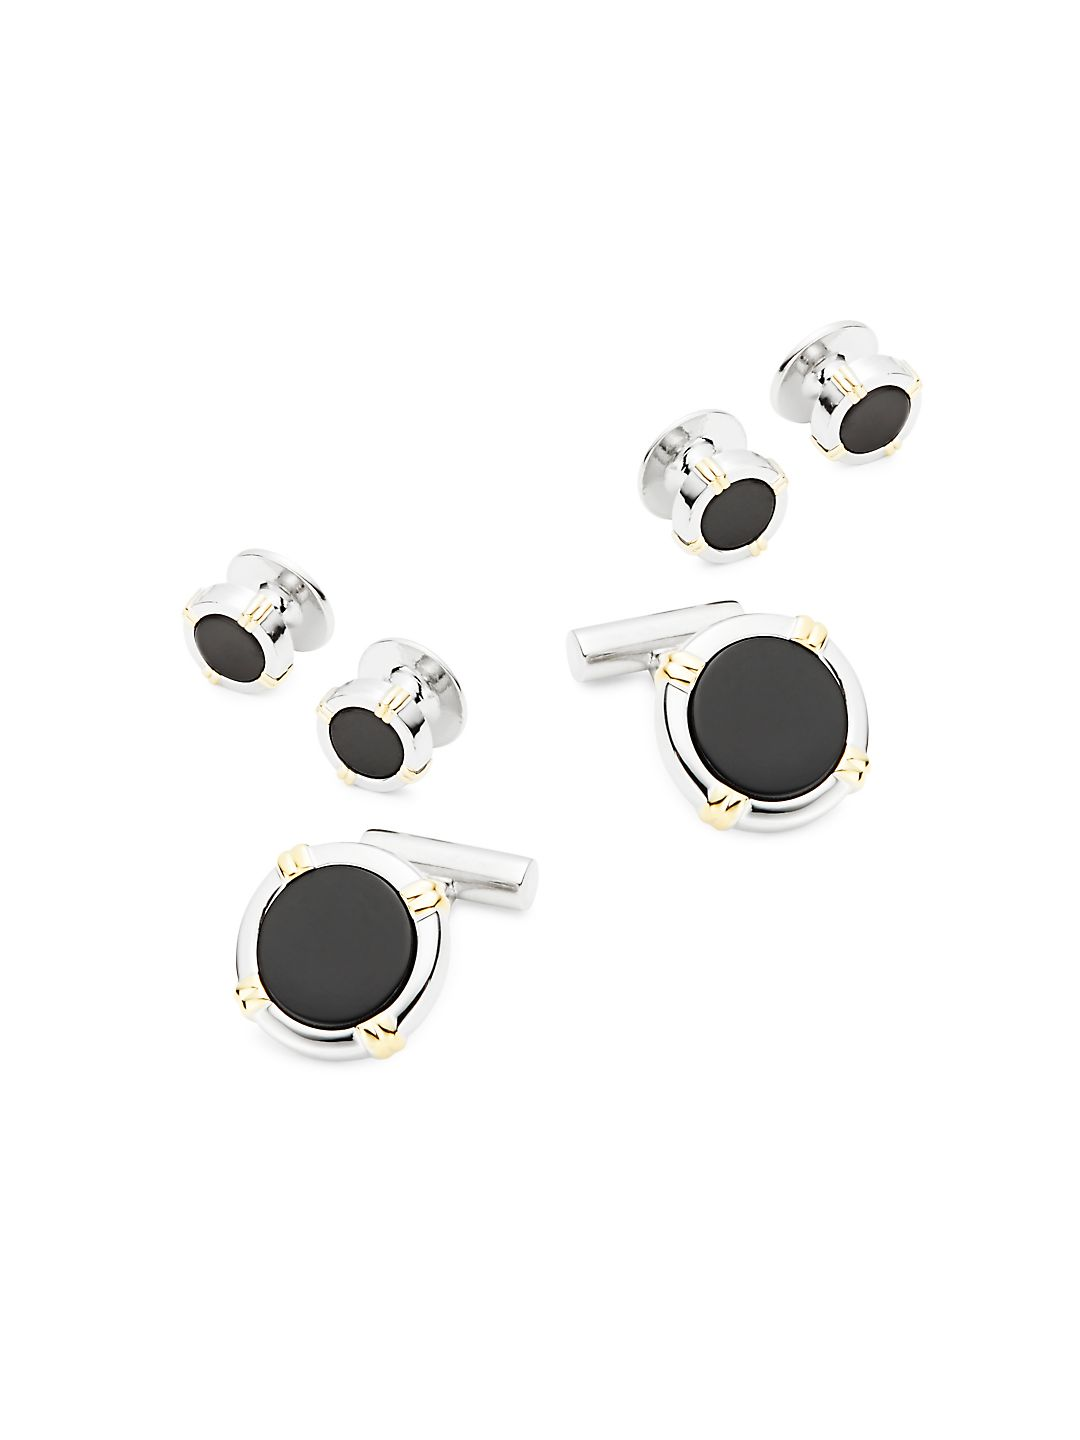 Cuff Links and Tie-Clip Set